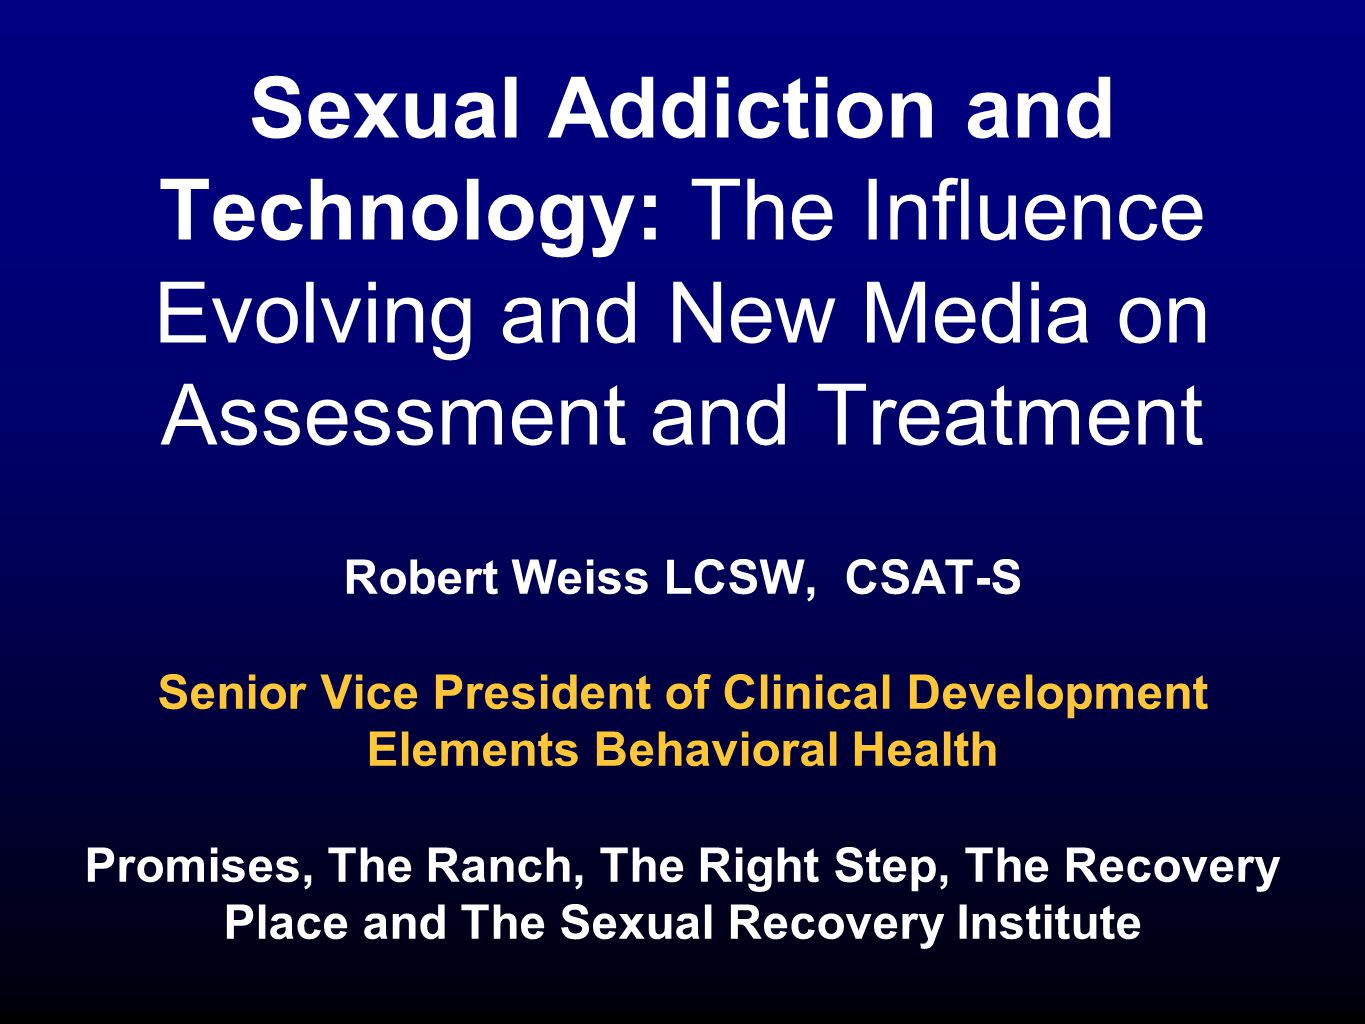 Sexual Addiction and Technology: The Influence Evolving and New Media on Assessment and Treatment Robert Weiss LCSW, CSAT-S Senior Vice President of Clinical Development Elements Behavioral Health Promises, The Ranch, The Right Step, The Recovery Place and The Sexual Recovery Institute